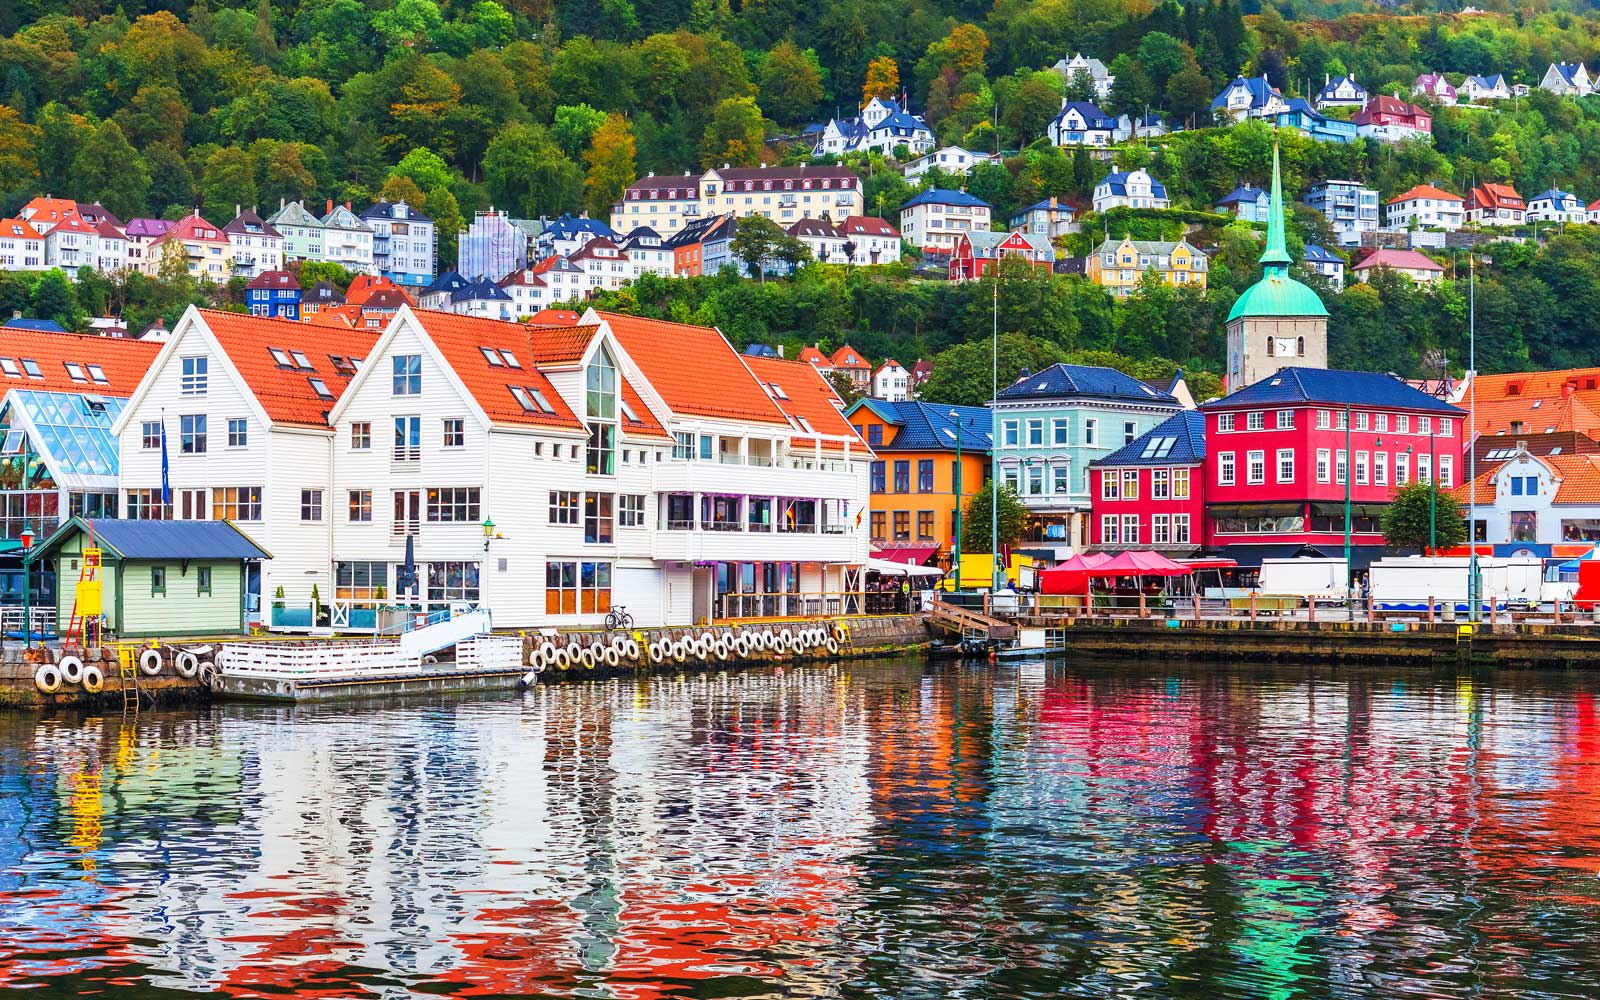 Fly to destinations like Bergen, Norway, starting at just $95 one-way with Norwegian Air's latest sale.